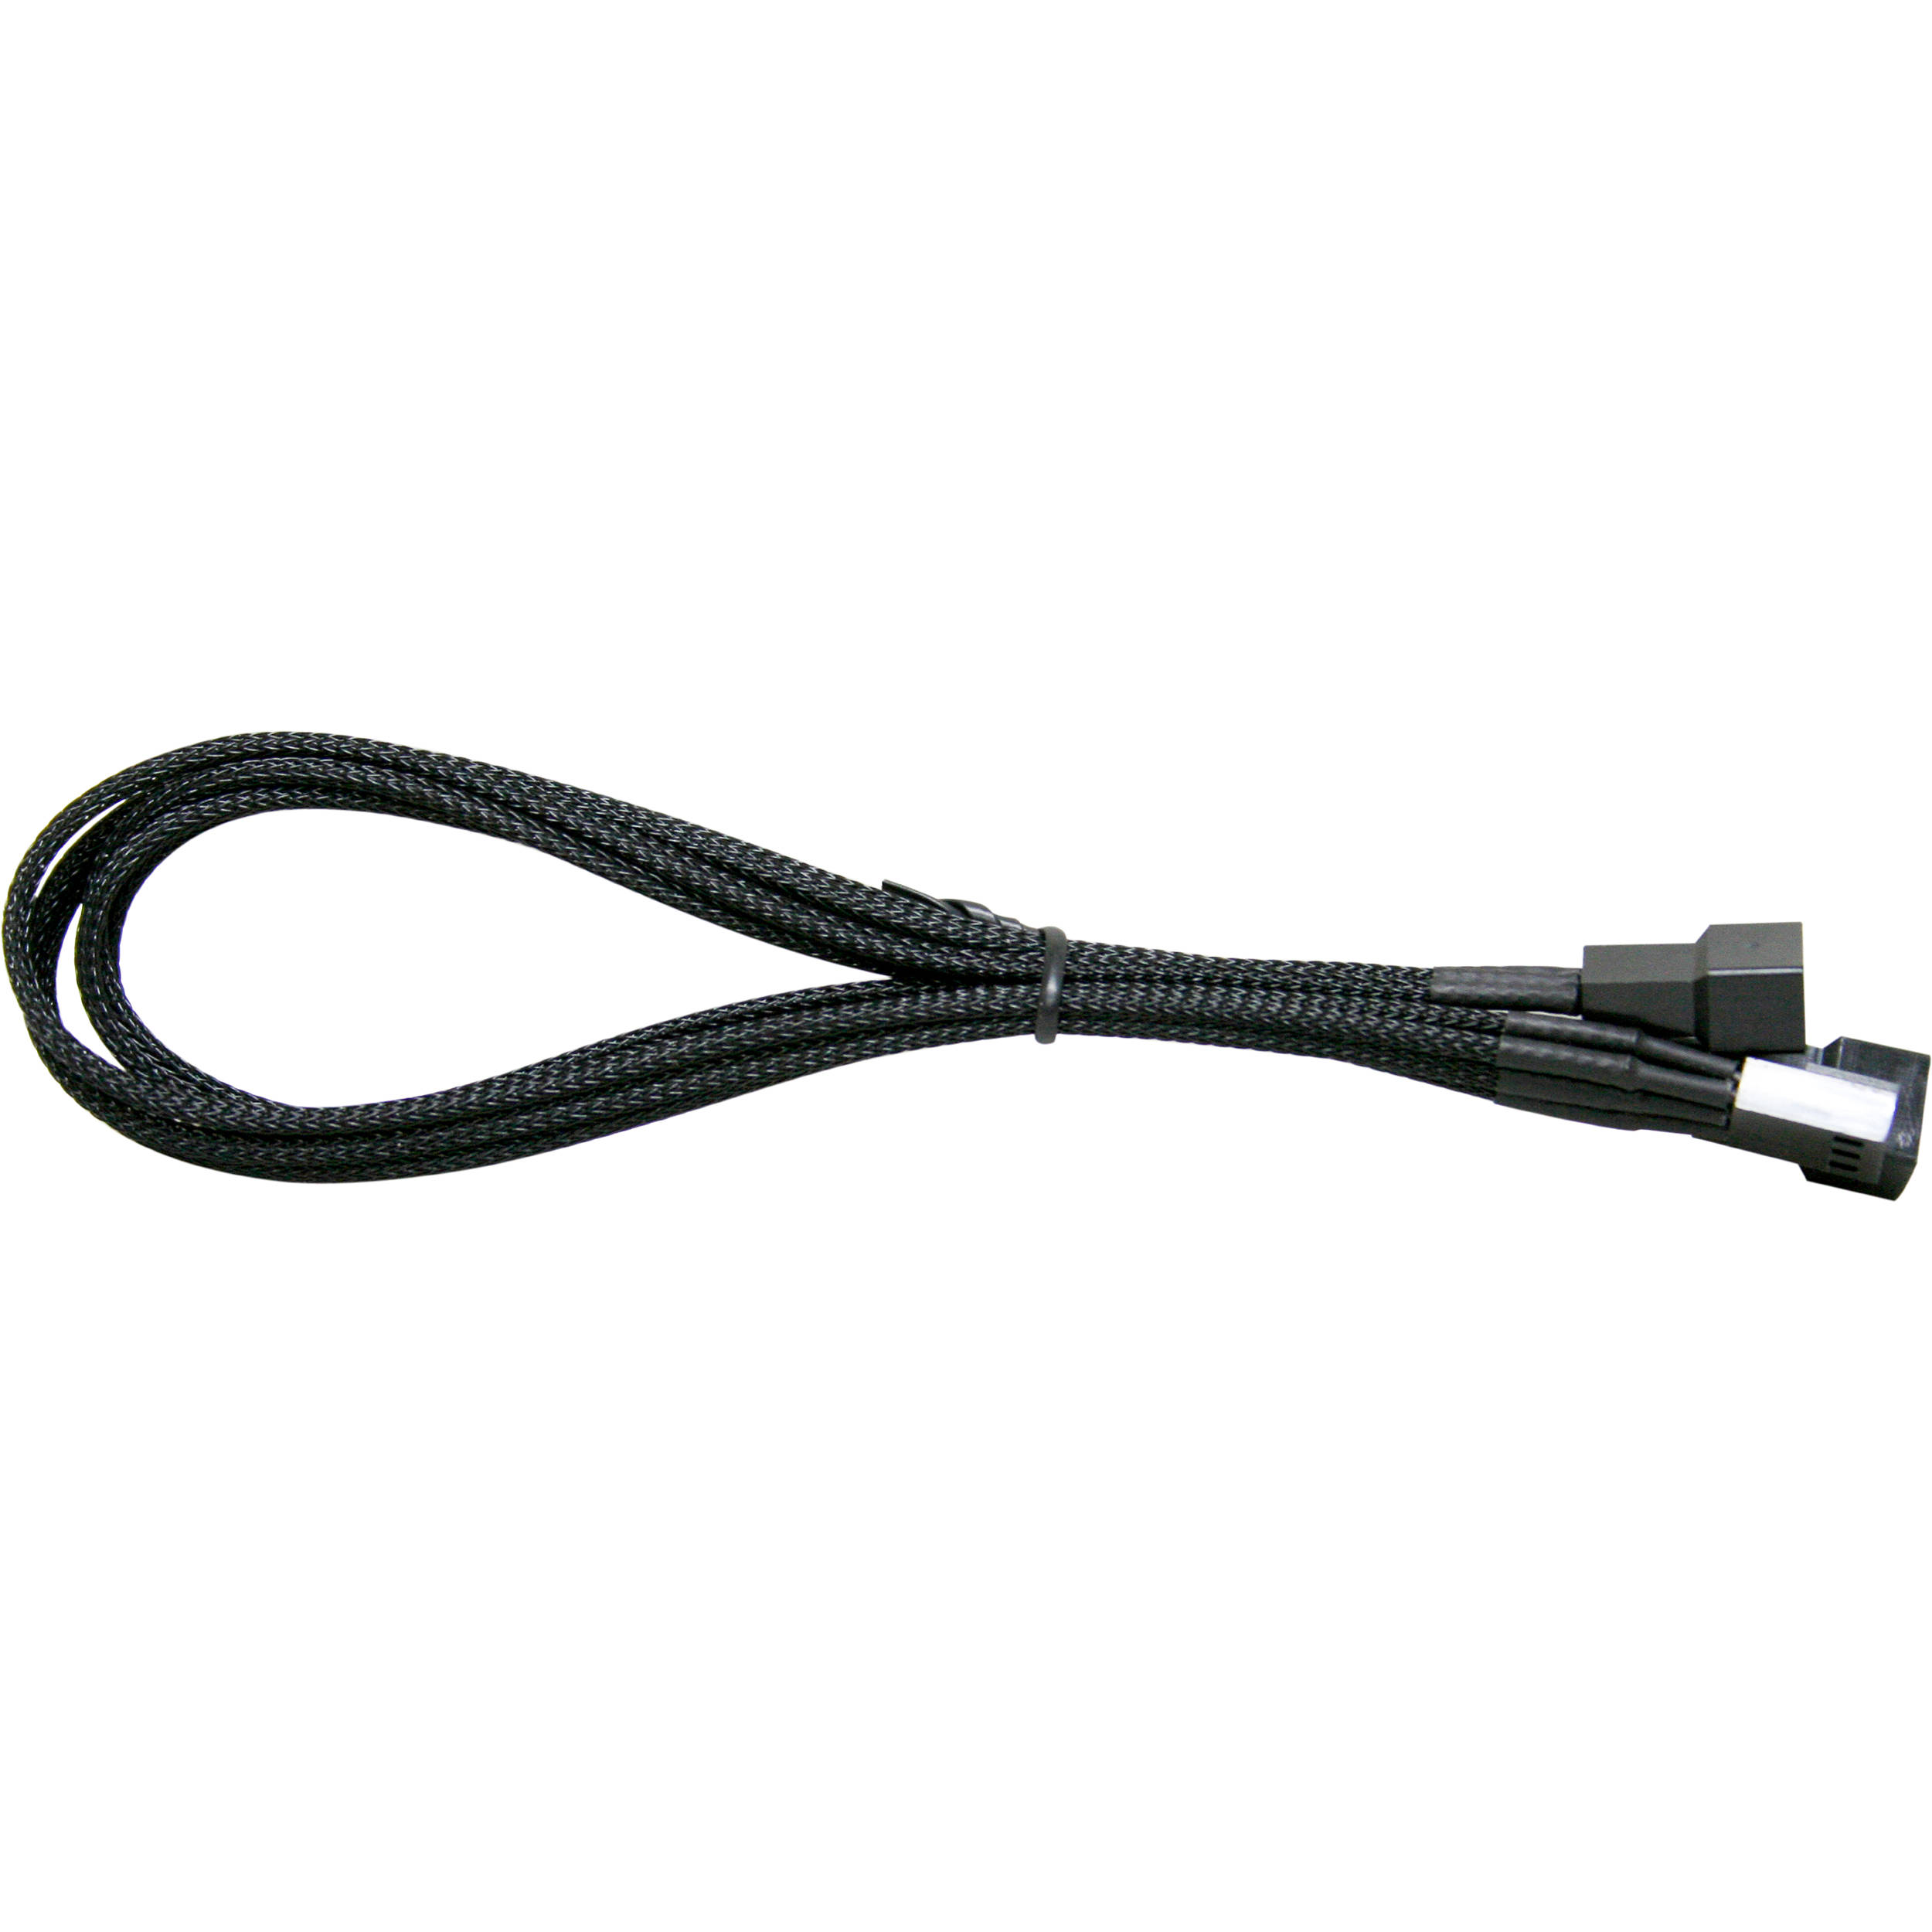 NZXT 3-Pin Fan Y-Sleeved Extension Cable (Black) CA-CB-3P